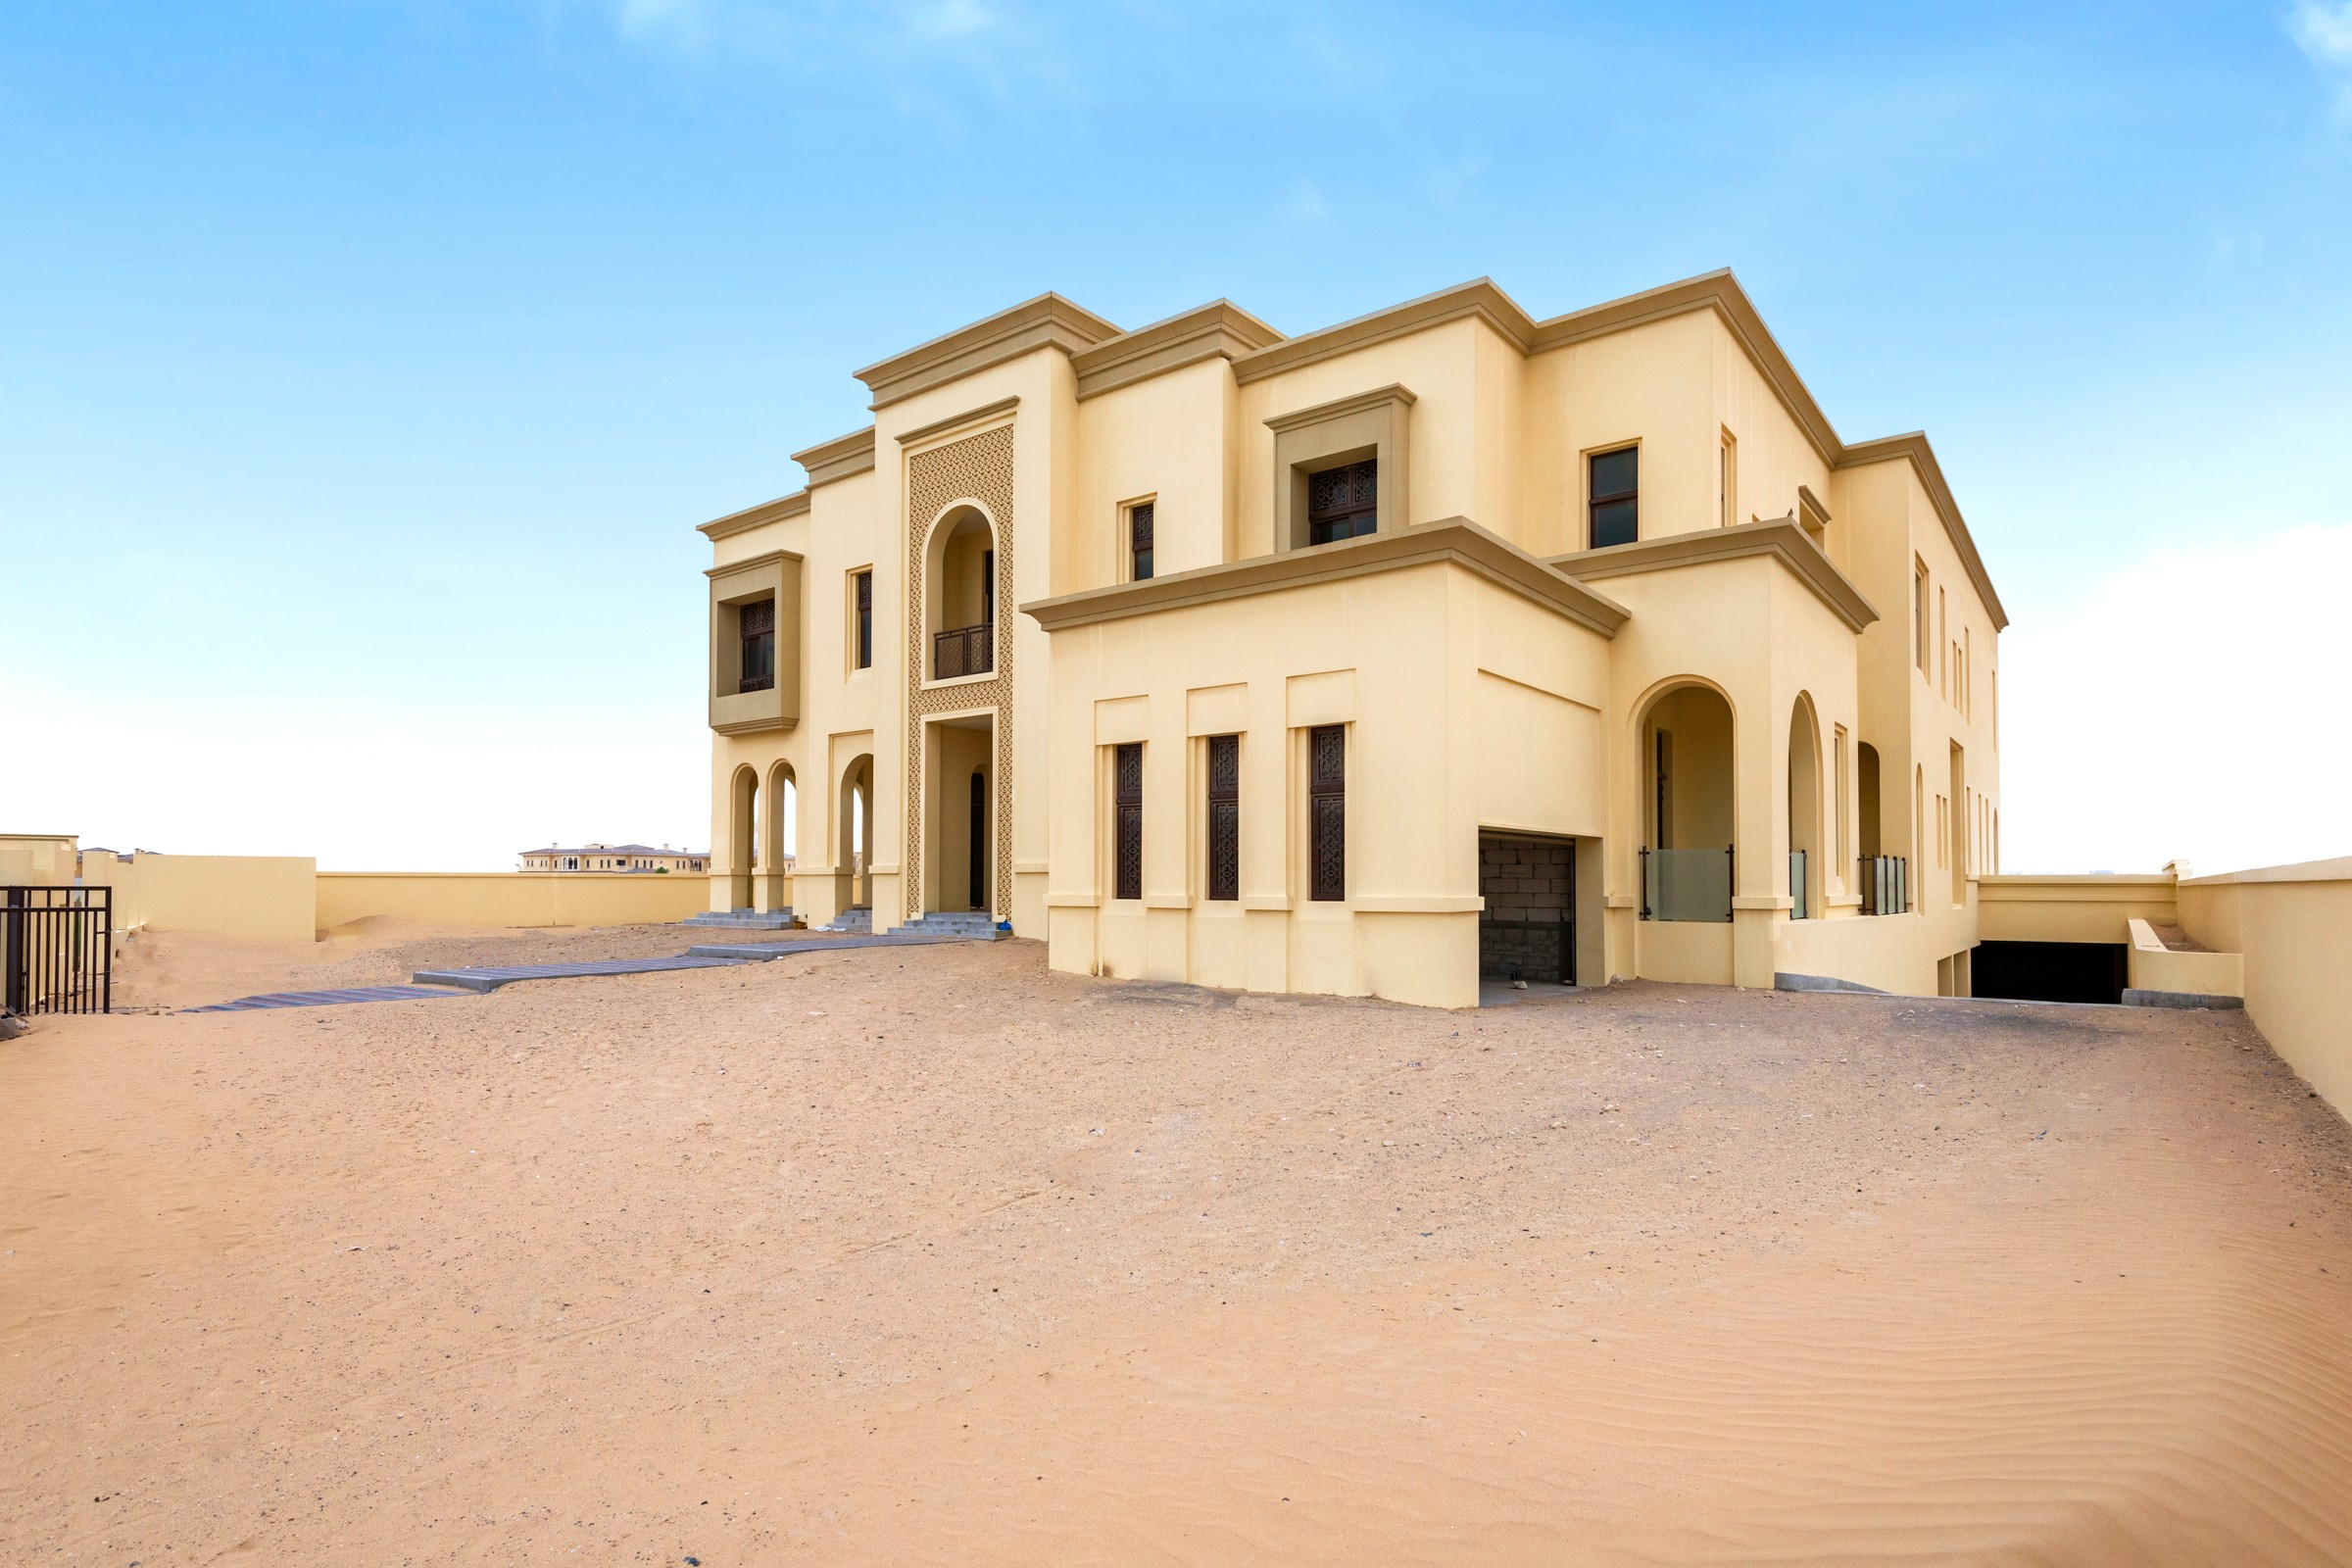 7 Bedroom Mansion   Easy to View